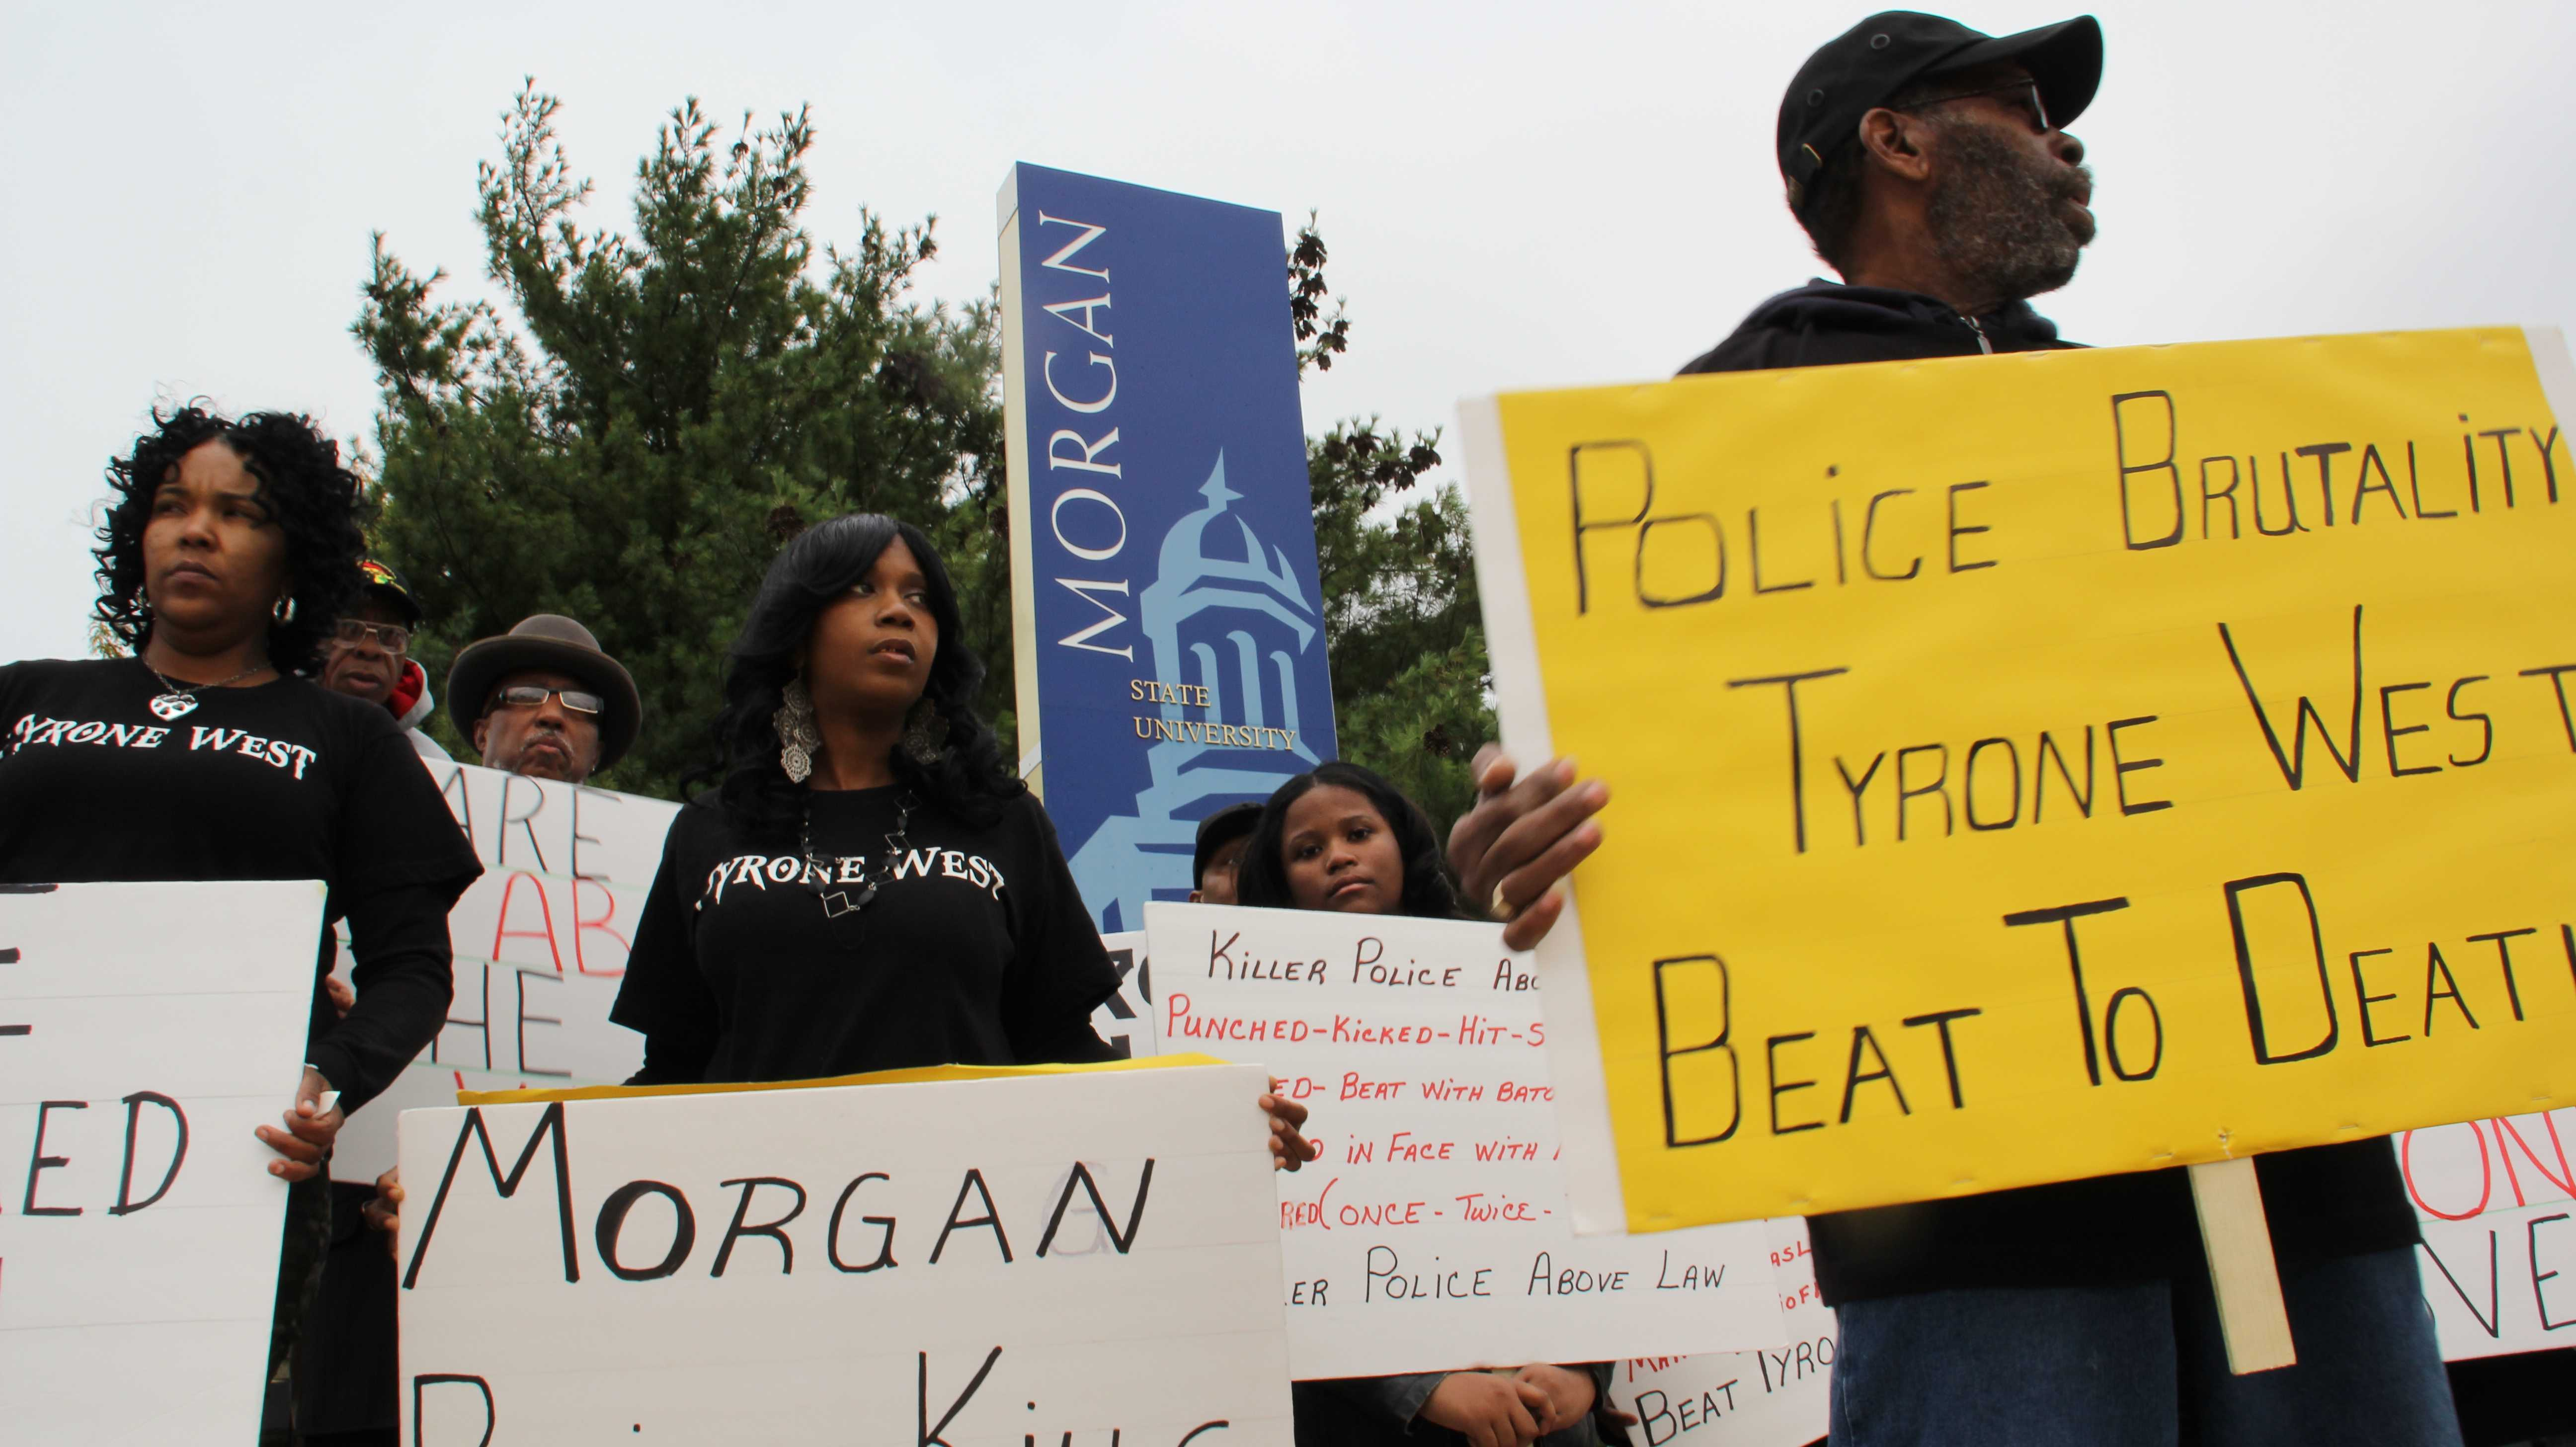 """Relatives, friends and supporters protest Tyrone West's death outside Northeast District police headquarters on a recent """"West Wednesday"""" (left to right): Jamie Richardson (West's cousin), Tawanda Jones (West's sister), George Peoples (West's uncle)"""